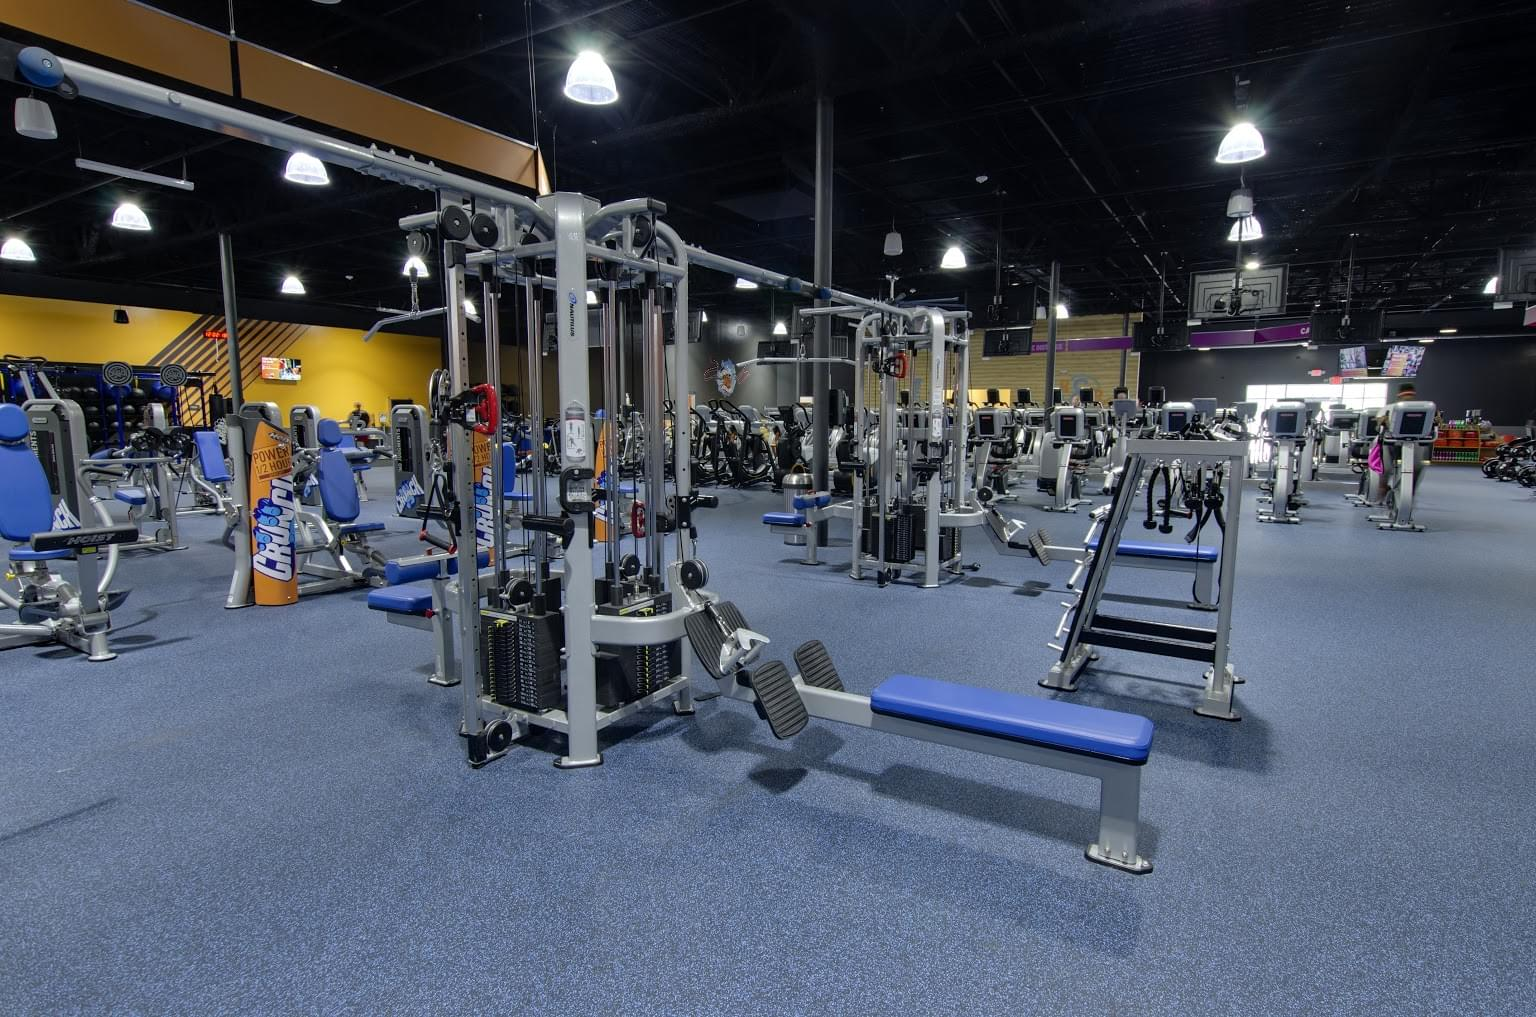 Crunch Fitness Gym and Health Club in Summerville, SC